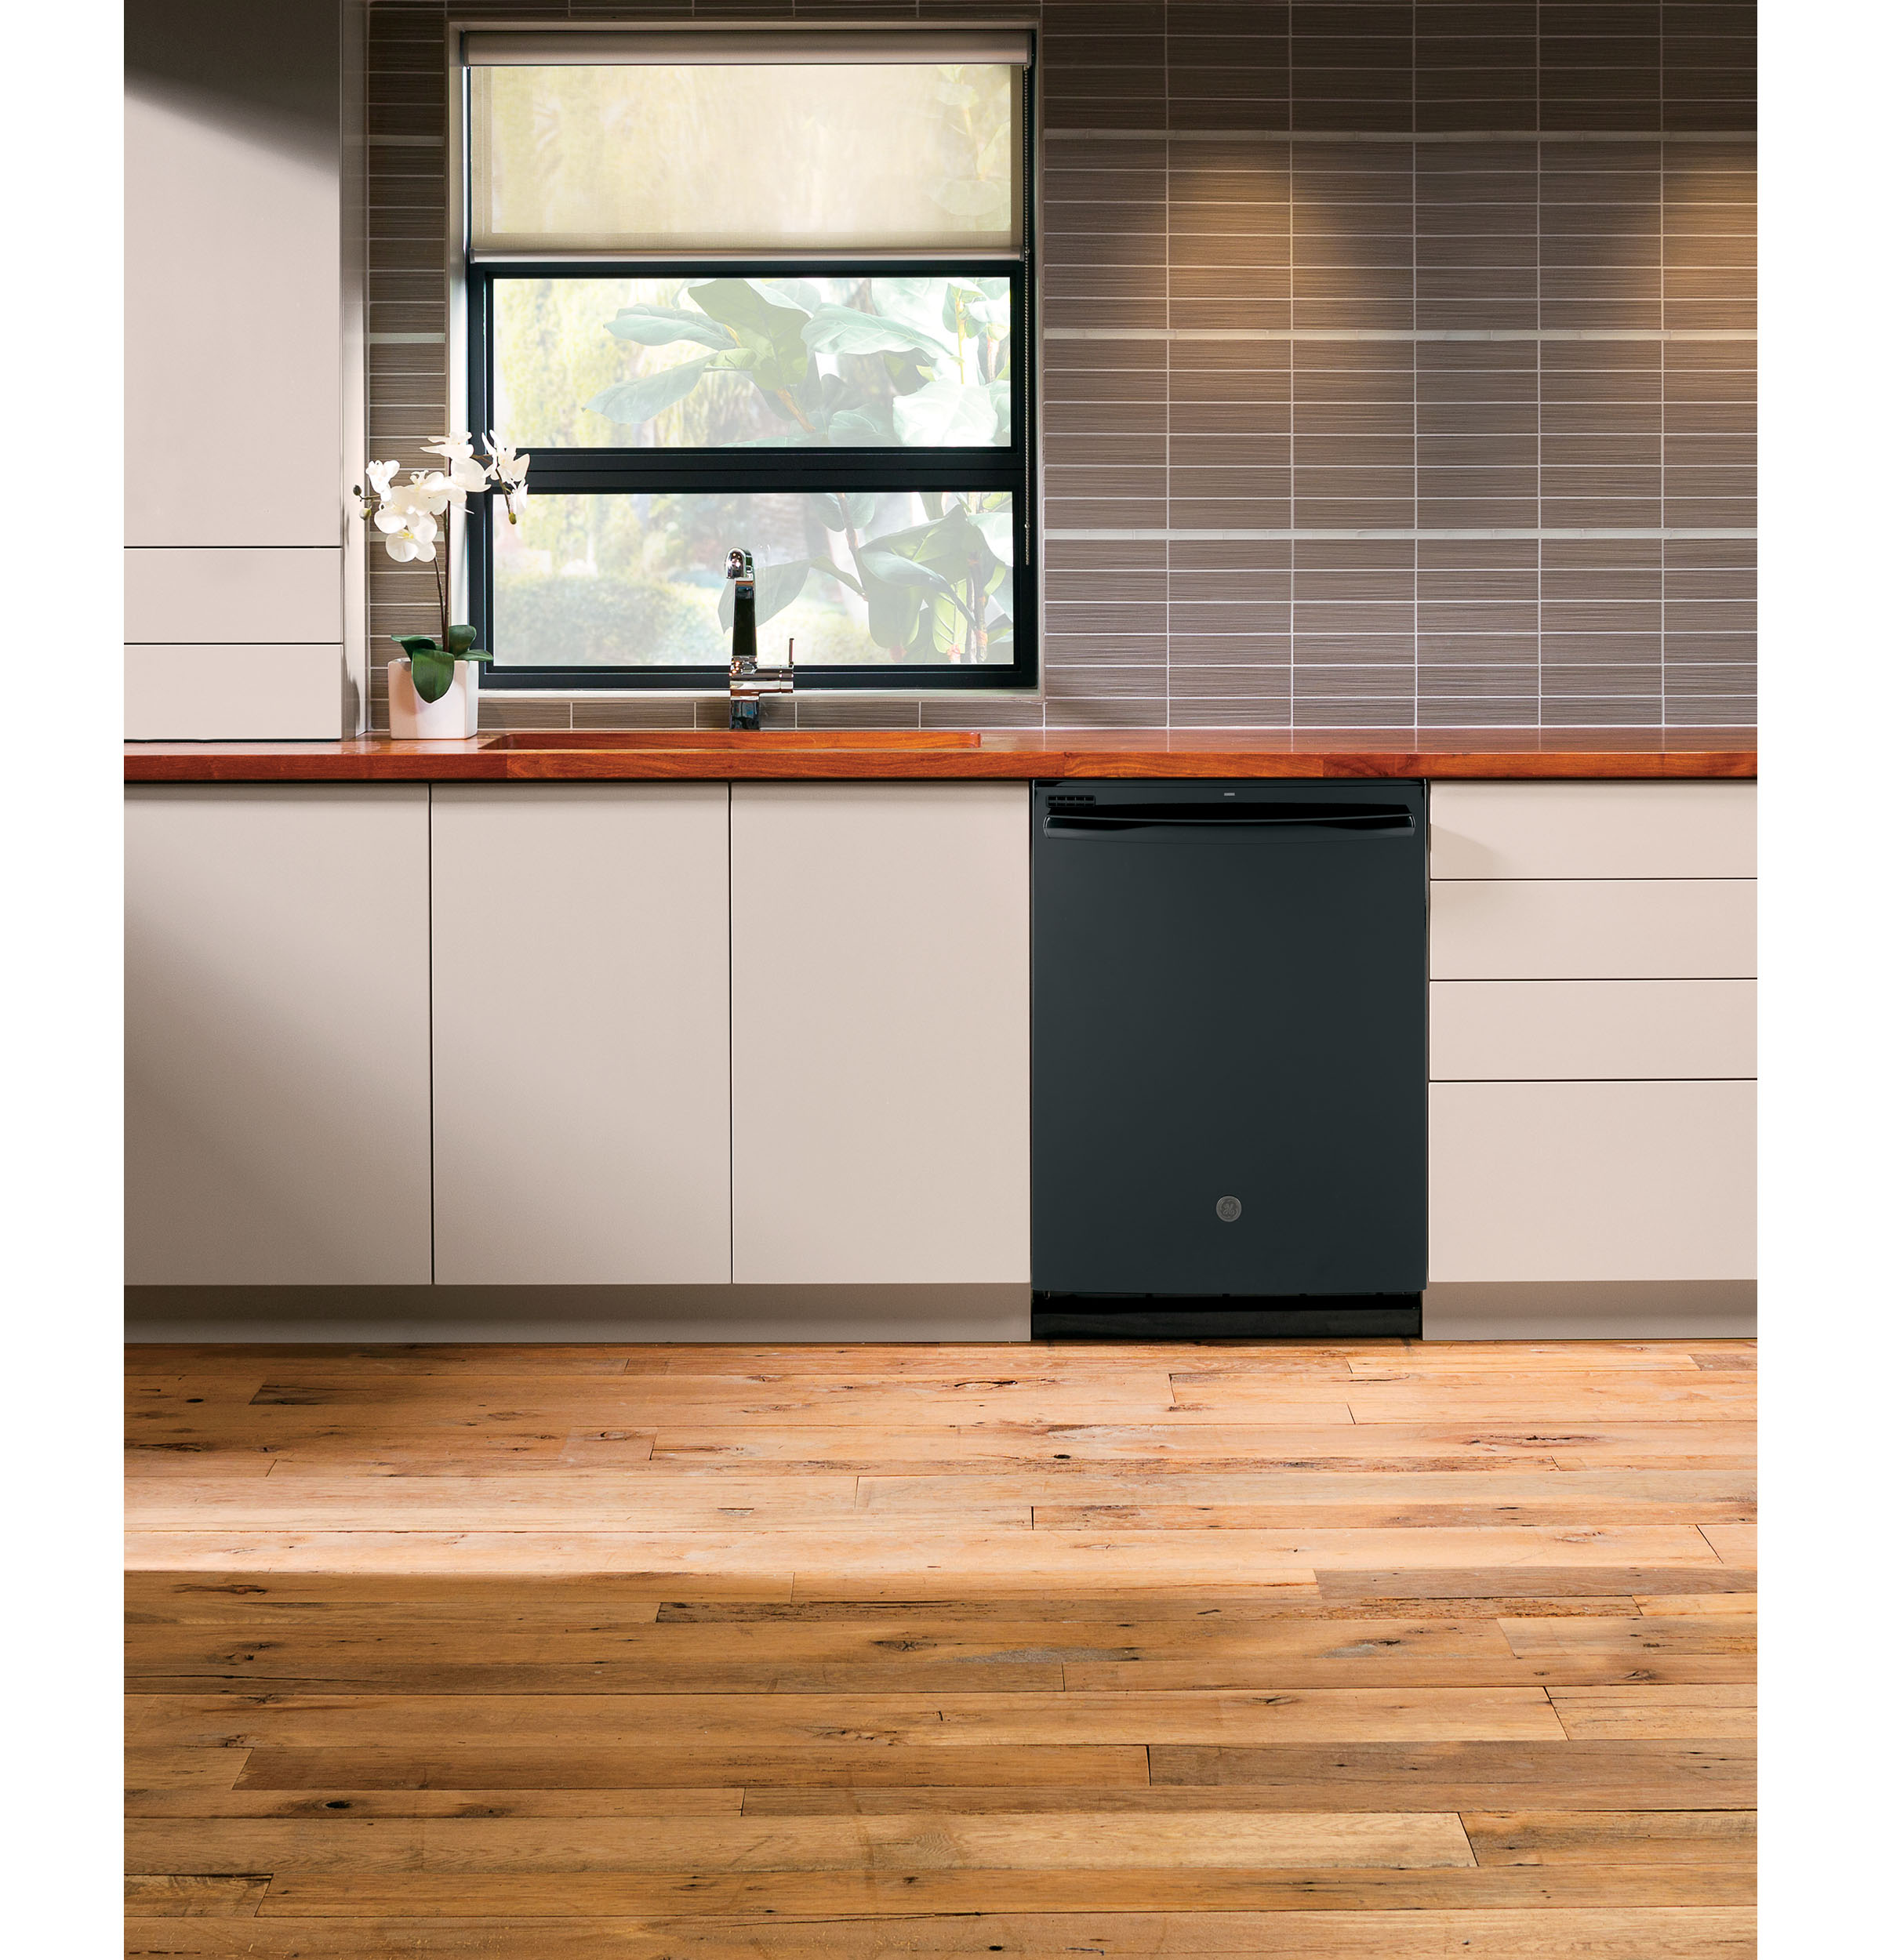 Model: GDT530PGPBB   GE GE® Top Control with Plastic Interior Dishwasher with Sanitize Cycle & Dry Boost